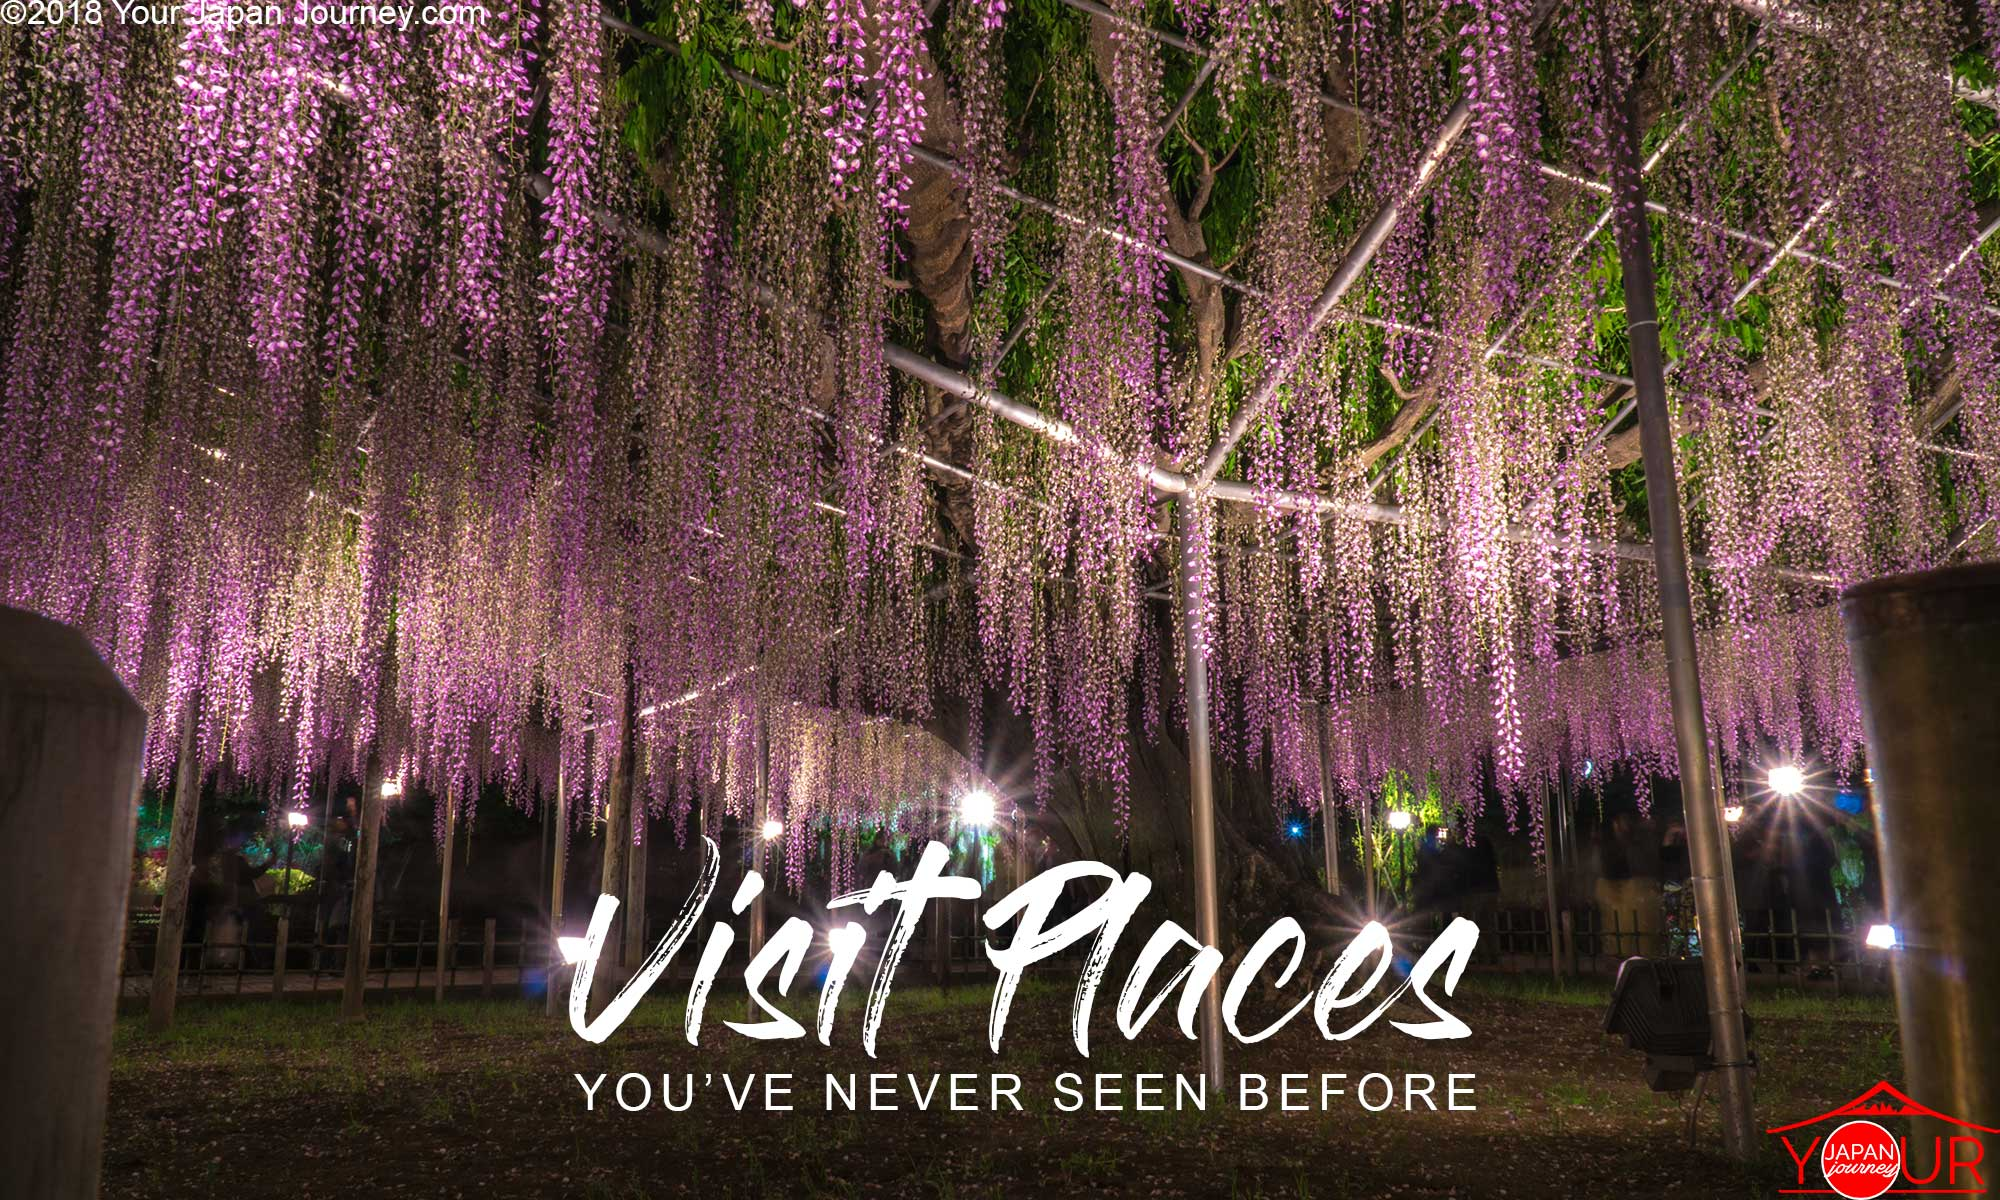 Wisteria Tree Japan-Real life Avatar Tree of Souls